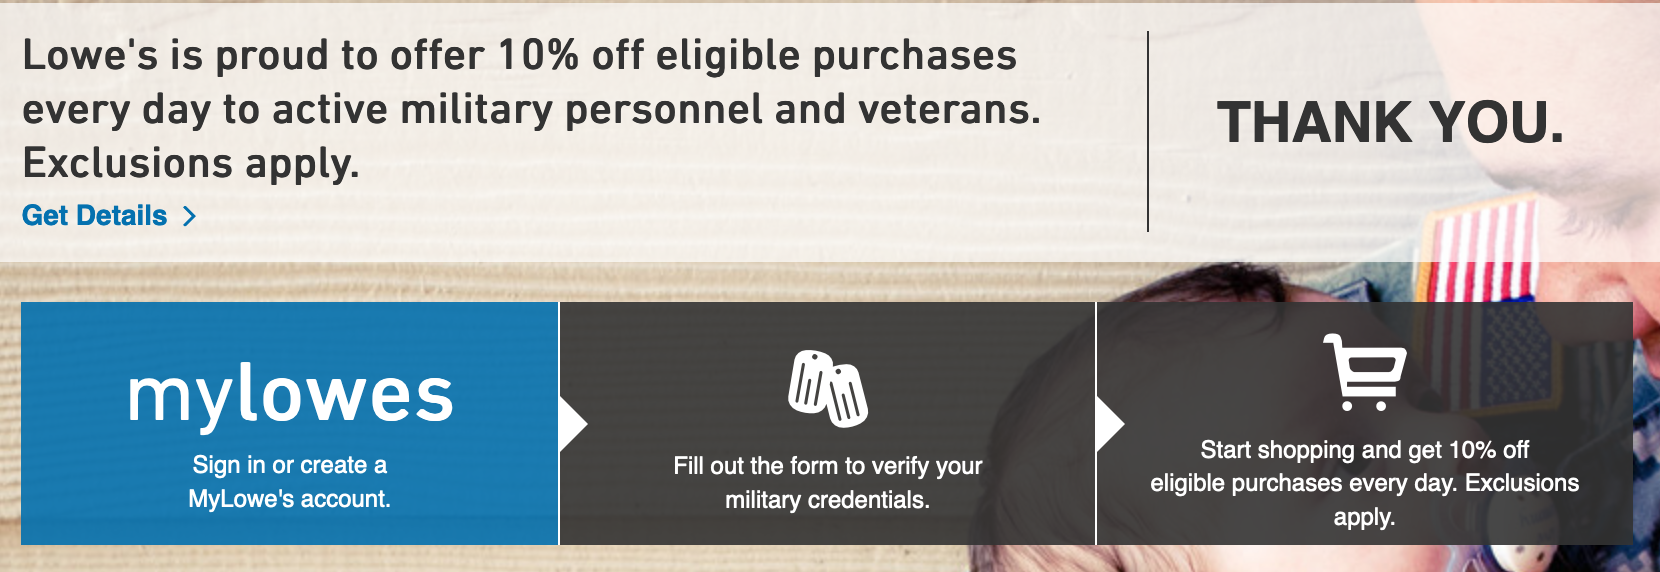 Lowe's Military Veteran Discounts